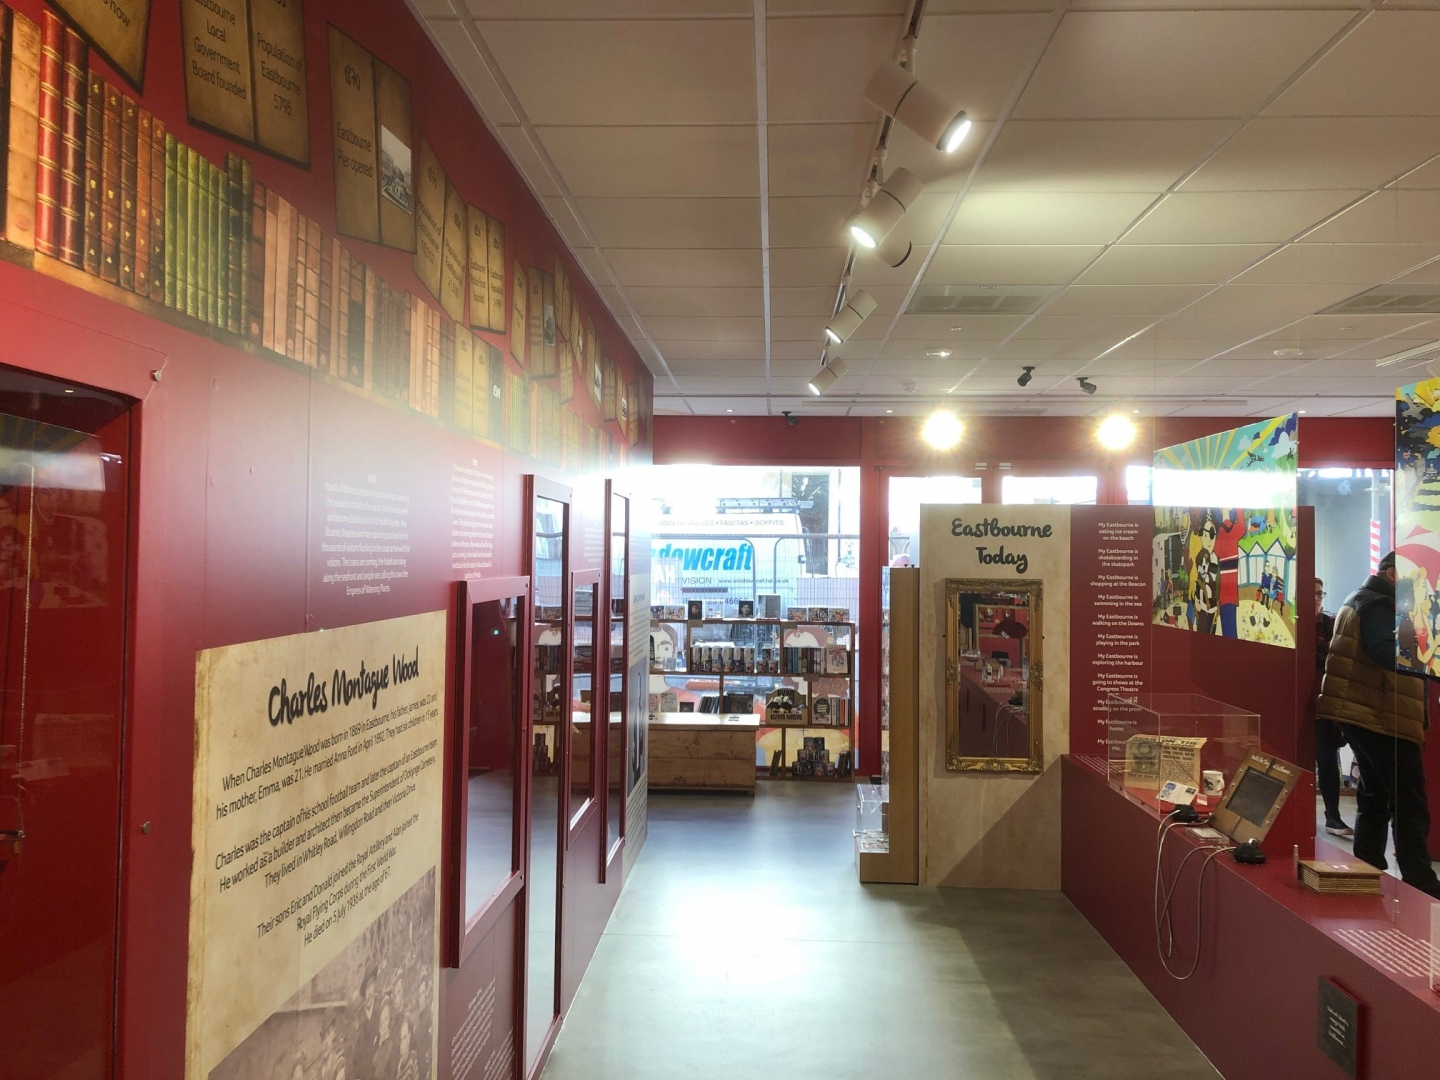 Eastbourne Museum Complete Works